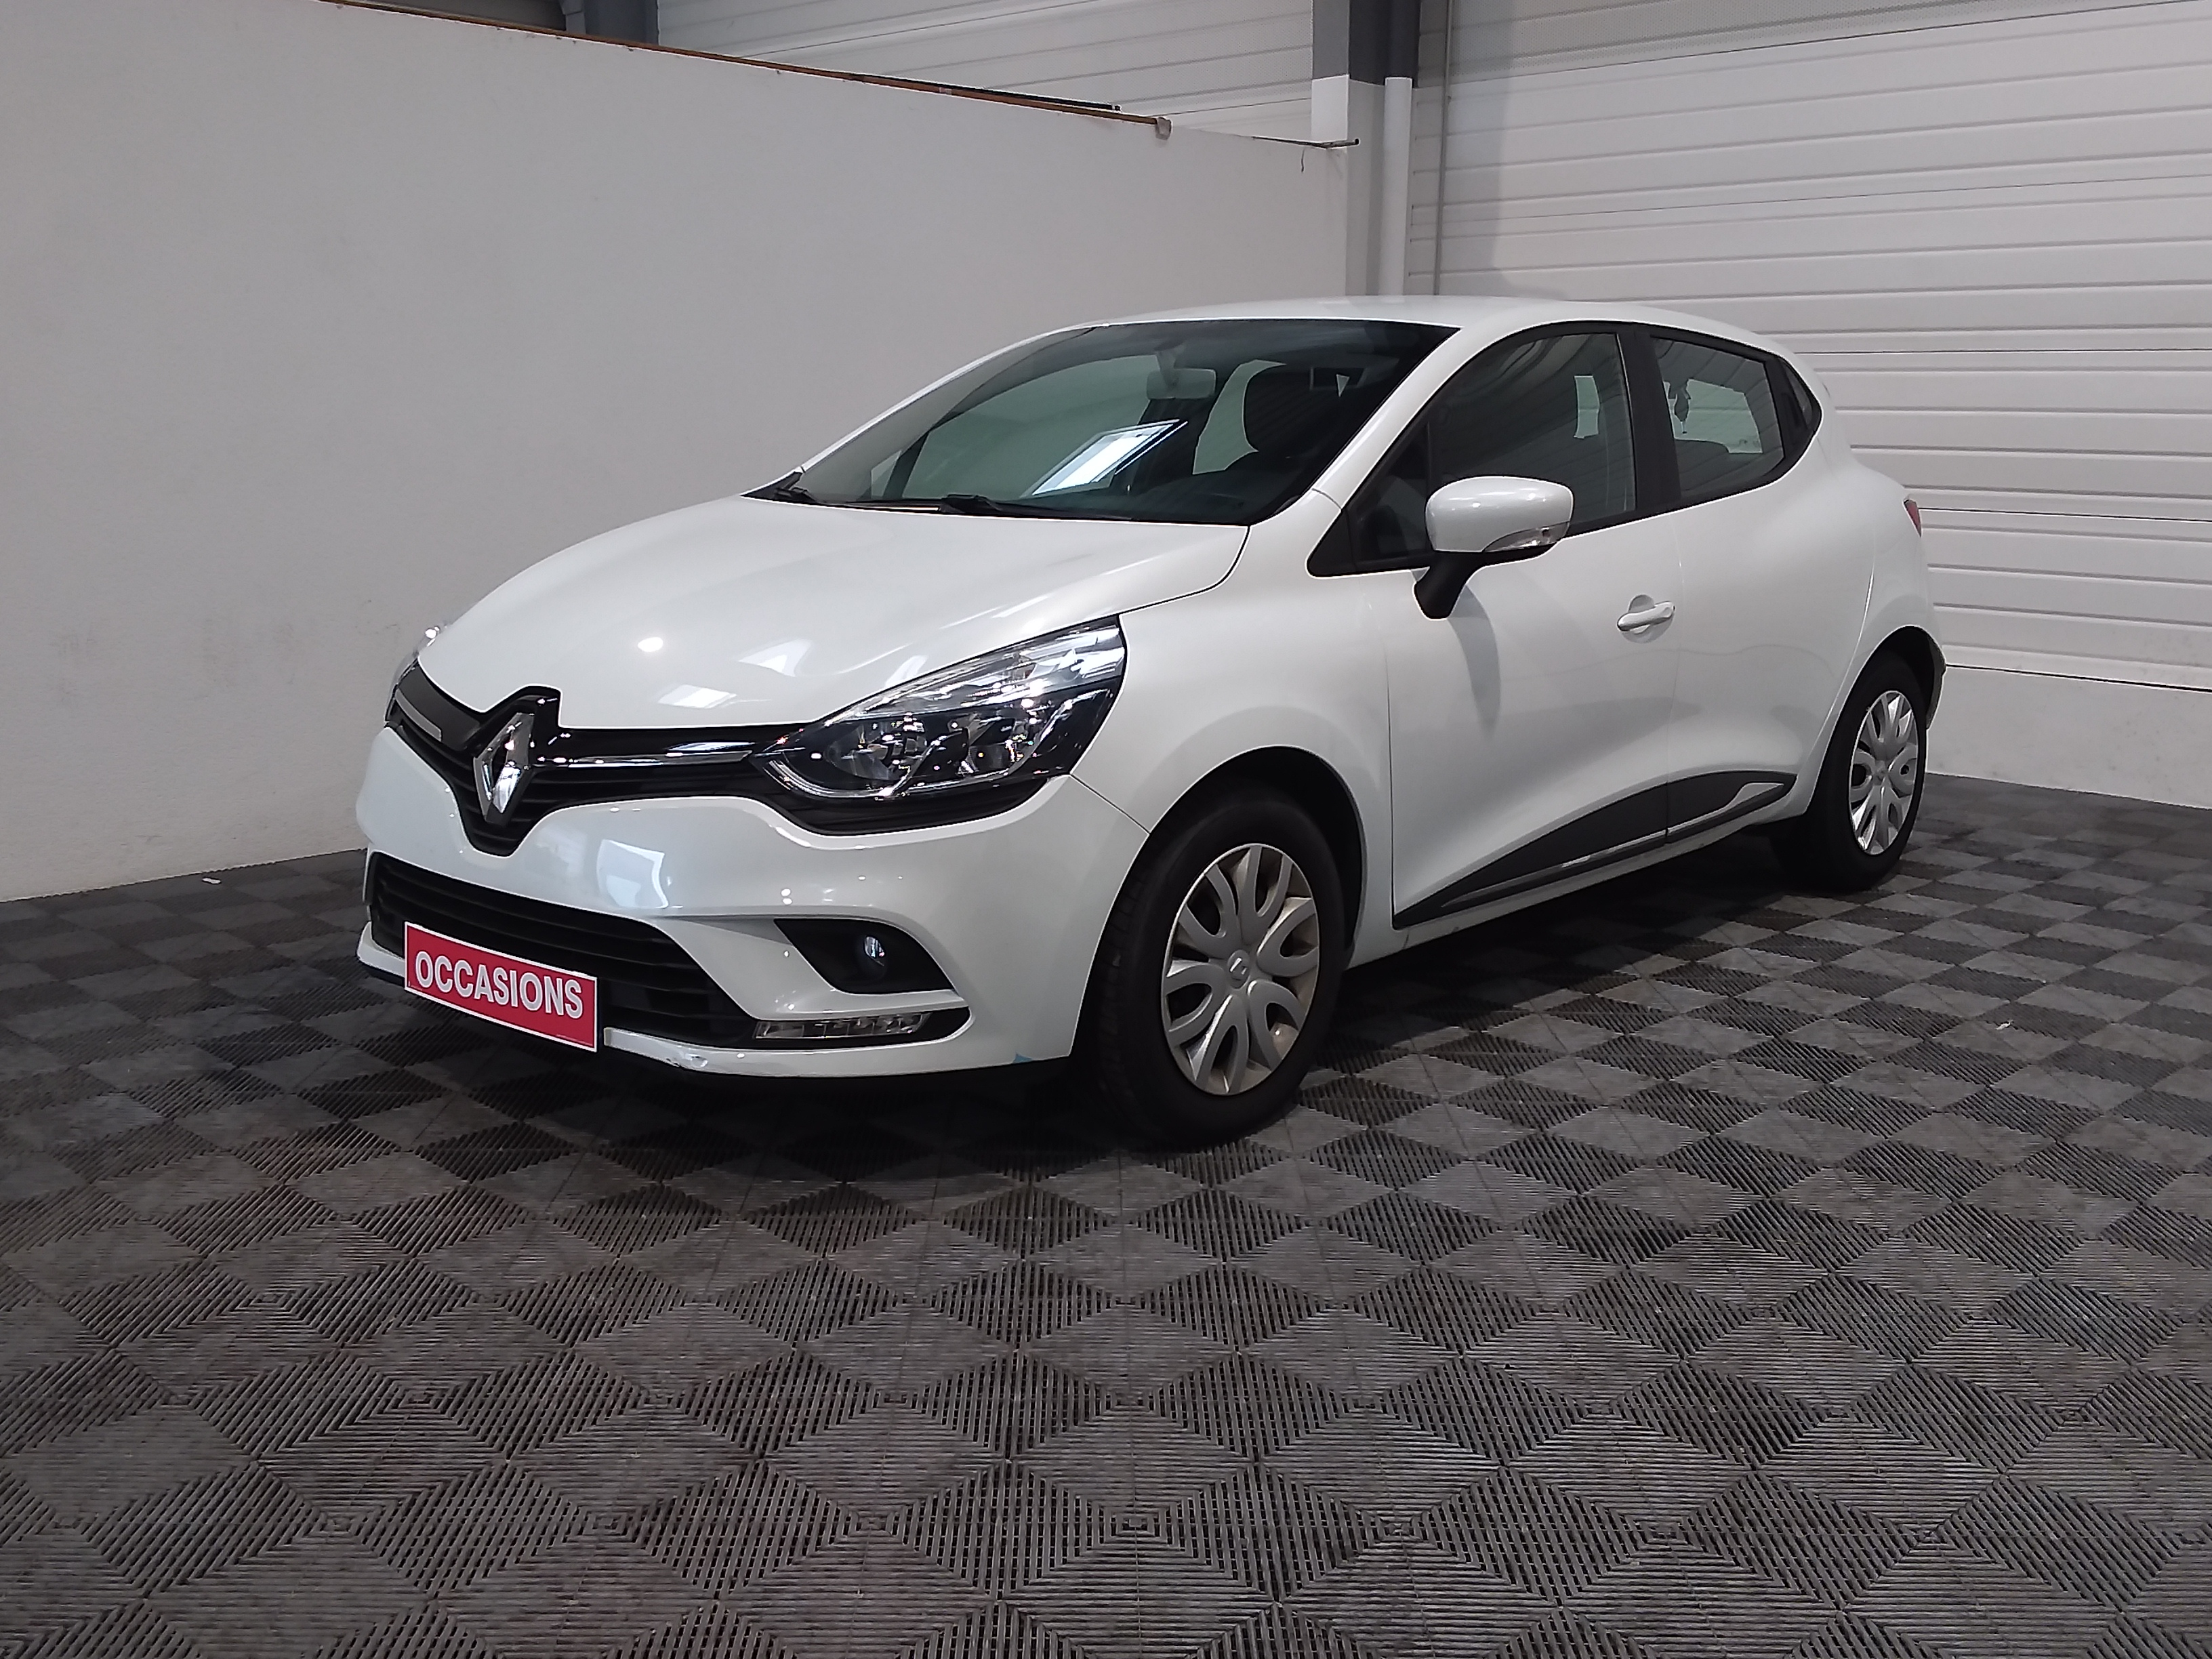 RENAULT CLIO IV BUSINESS DCI 90 d'occasion